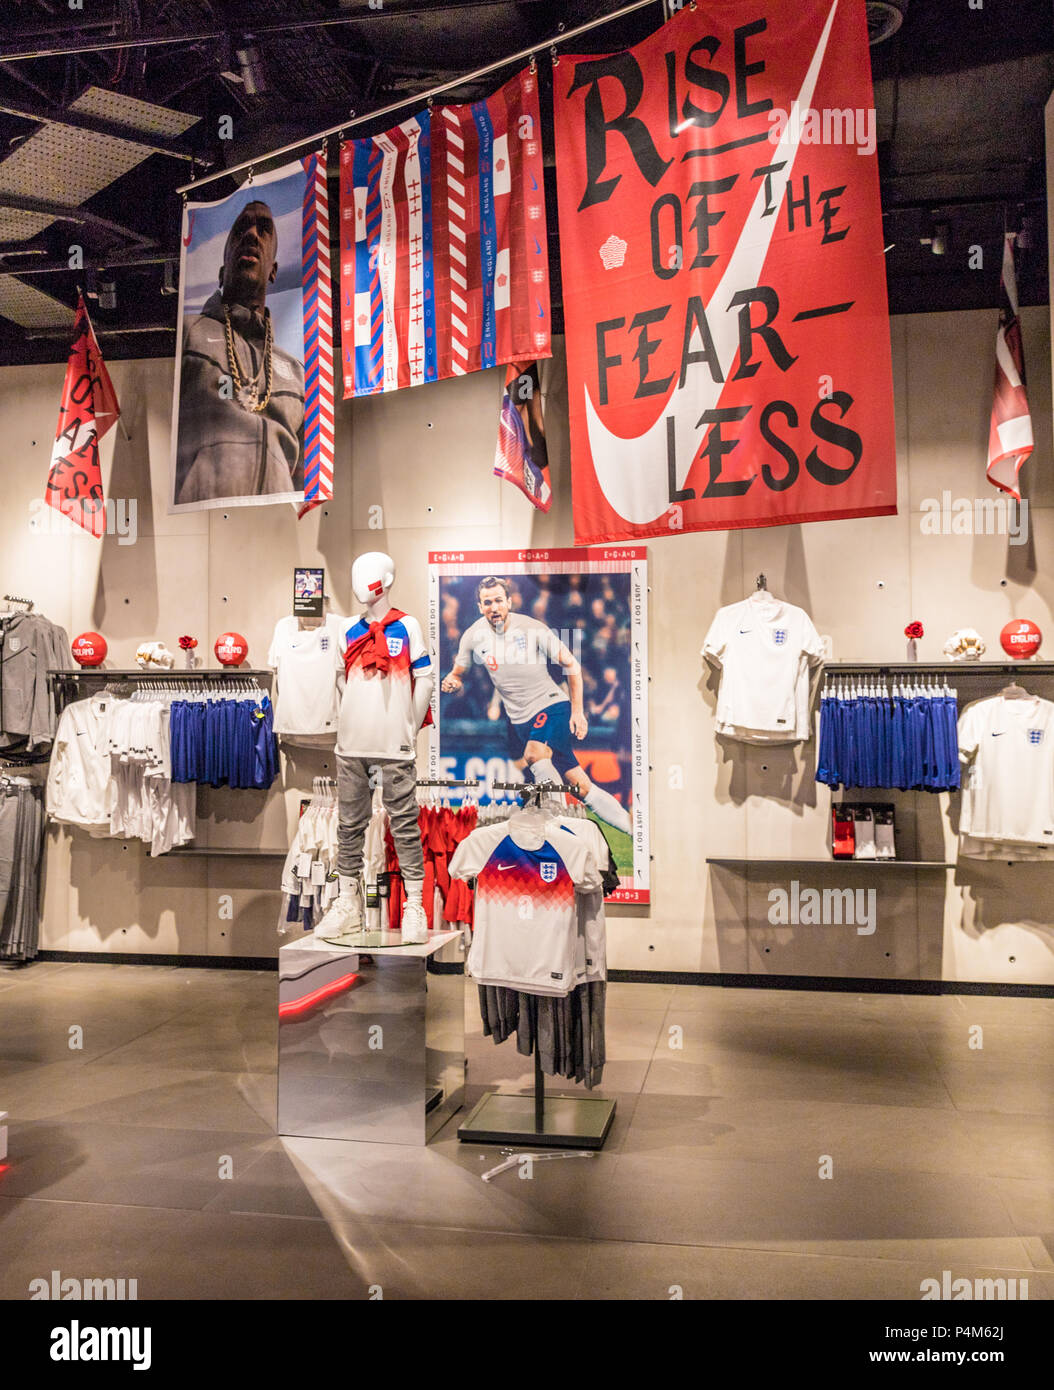 c5e24ab3e6bc London. June 2018. A view of the England football kits in the Nike town